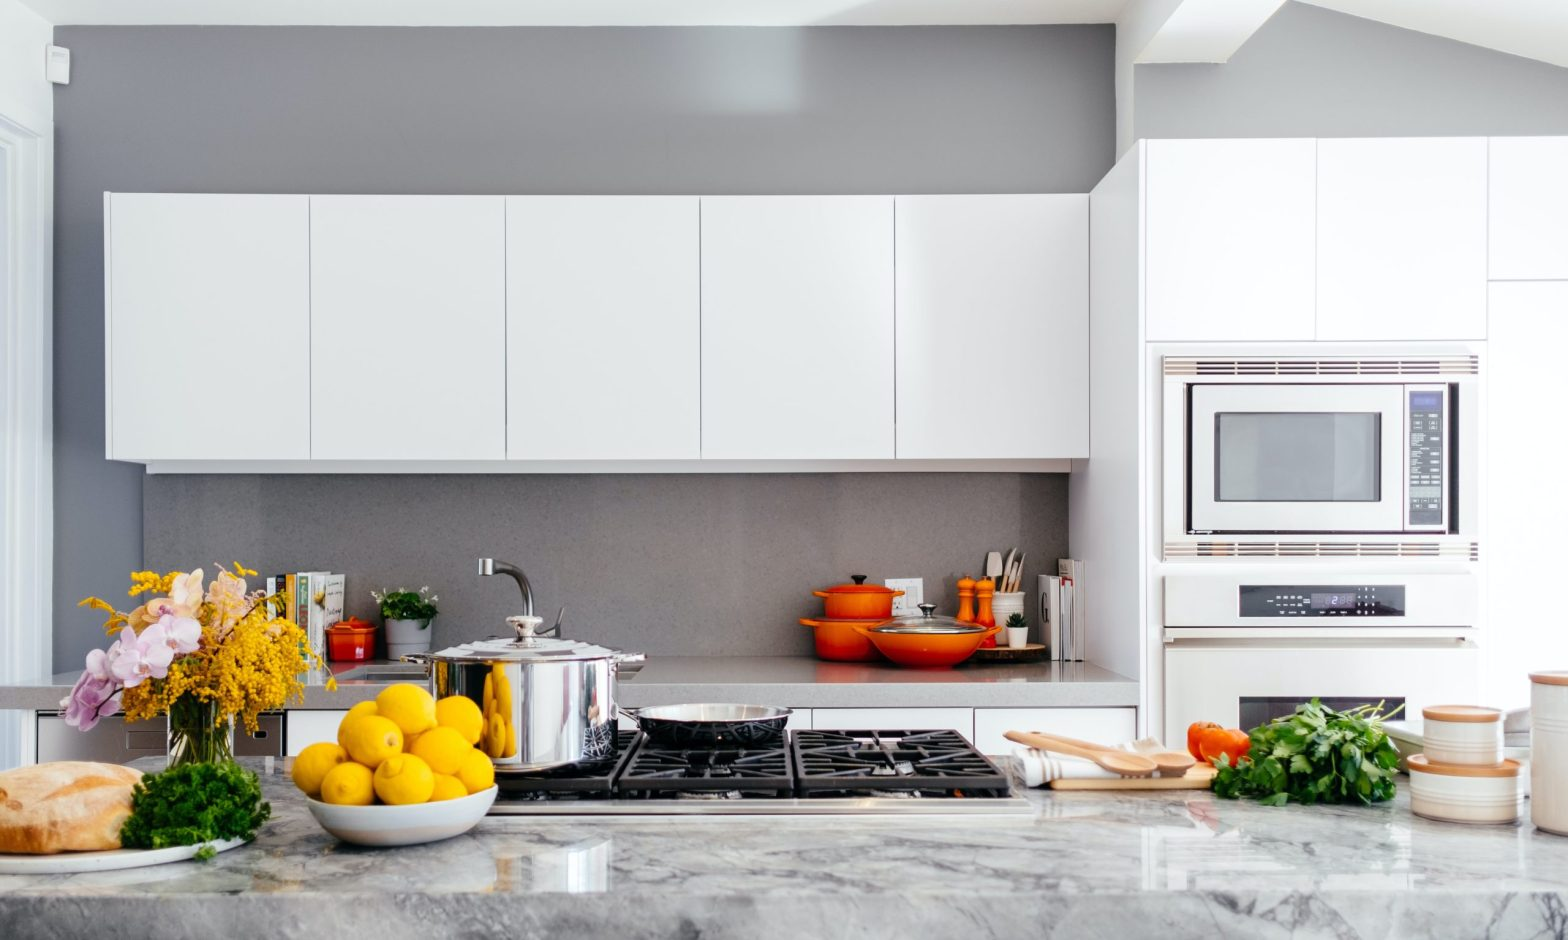 The decision one makes over a kitchen vs. kitchenette is easy! Here's everything you need to know about the difference between a kitchen and a kitchenette!